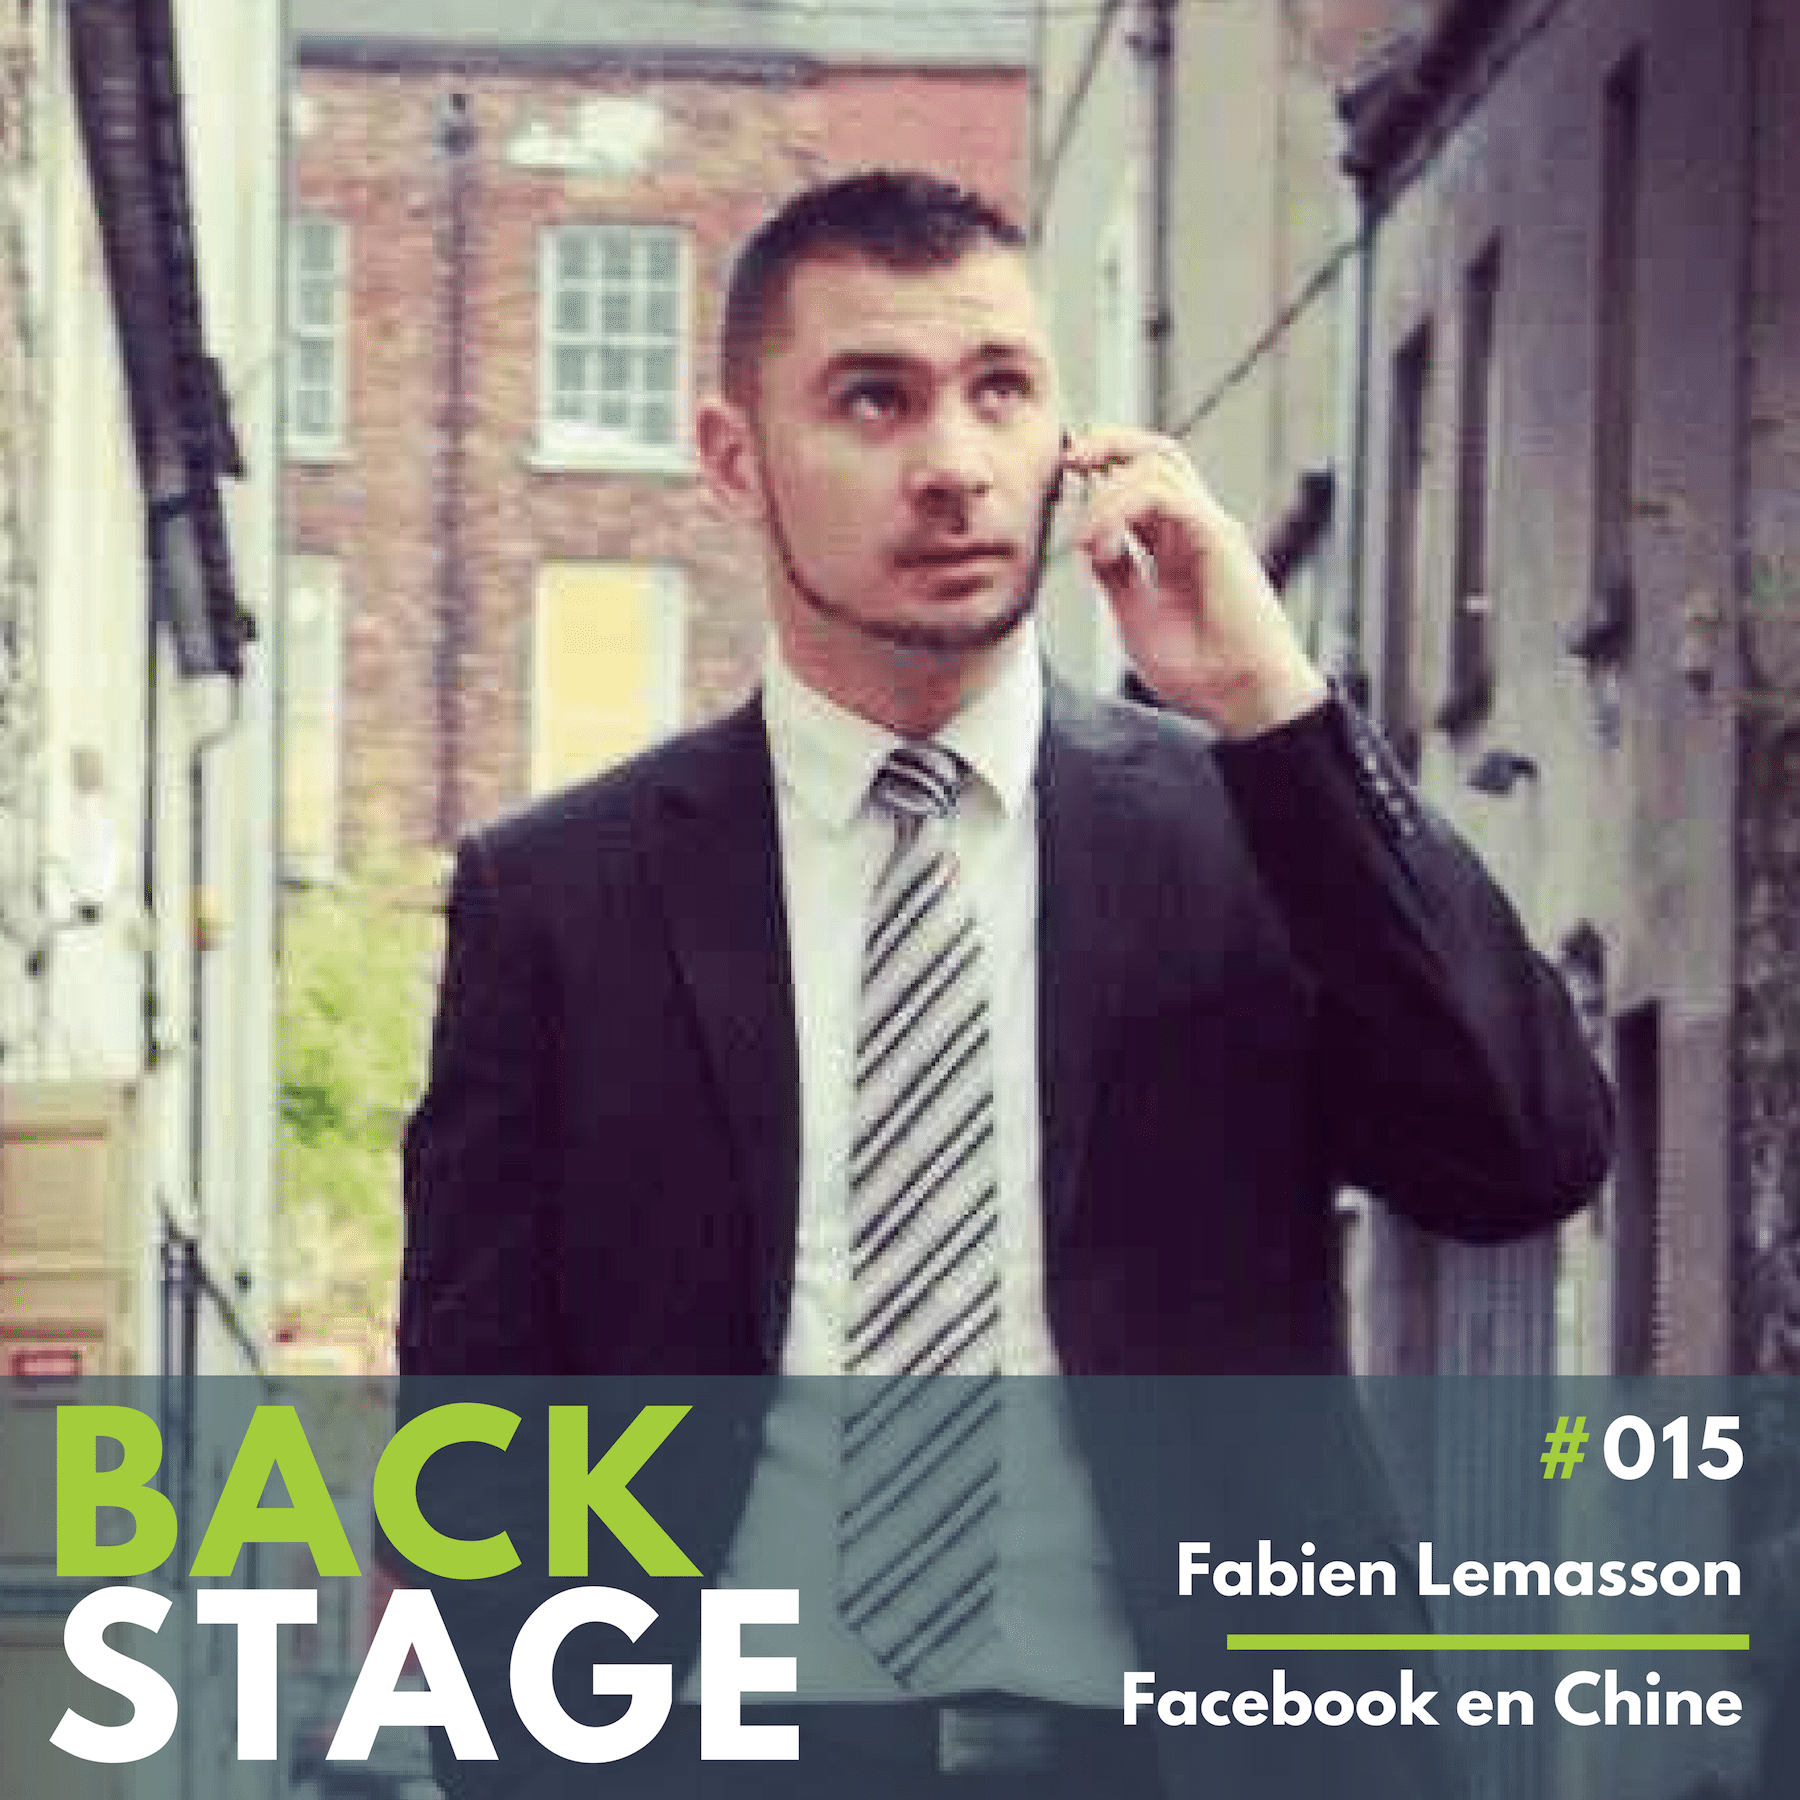 BACKSTAGE #015 - Fabien Lemasson copy